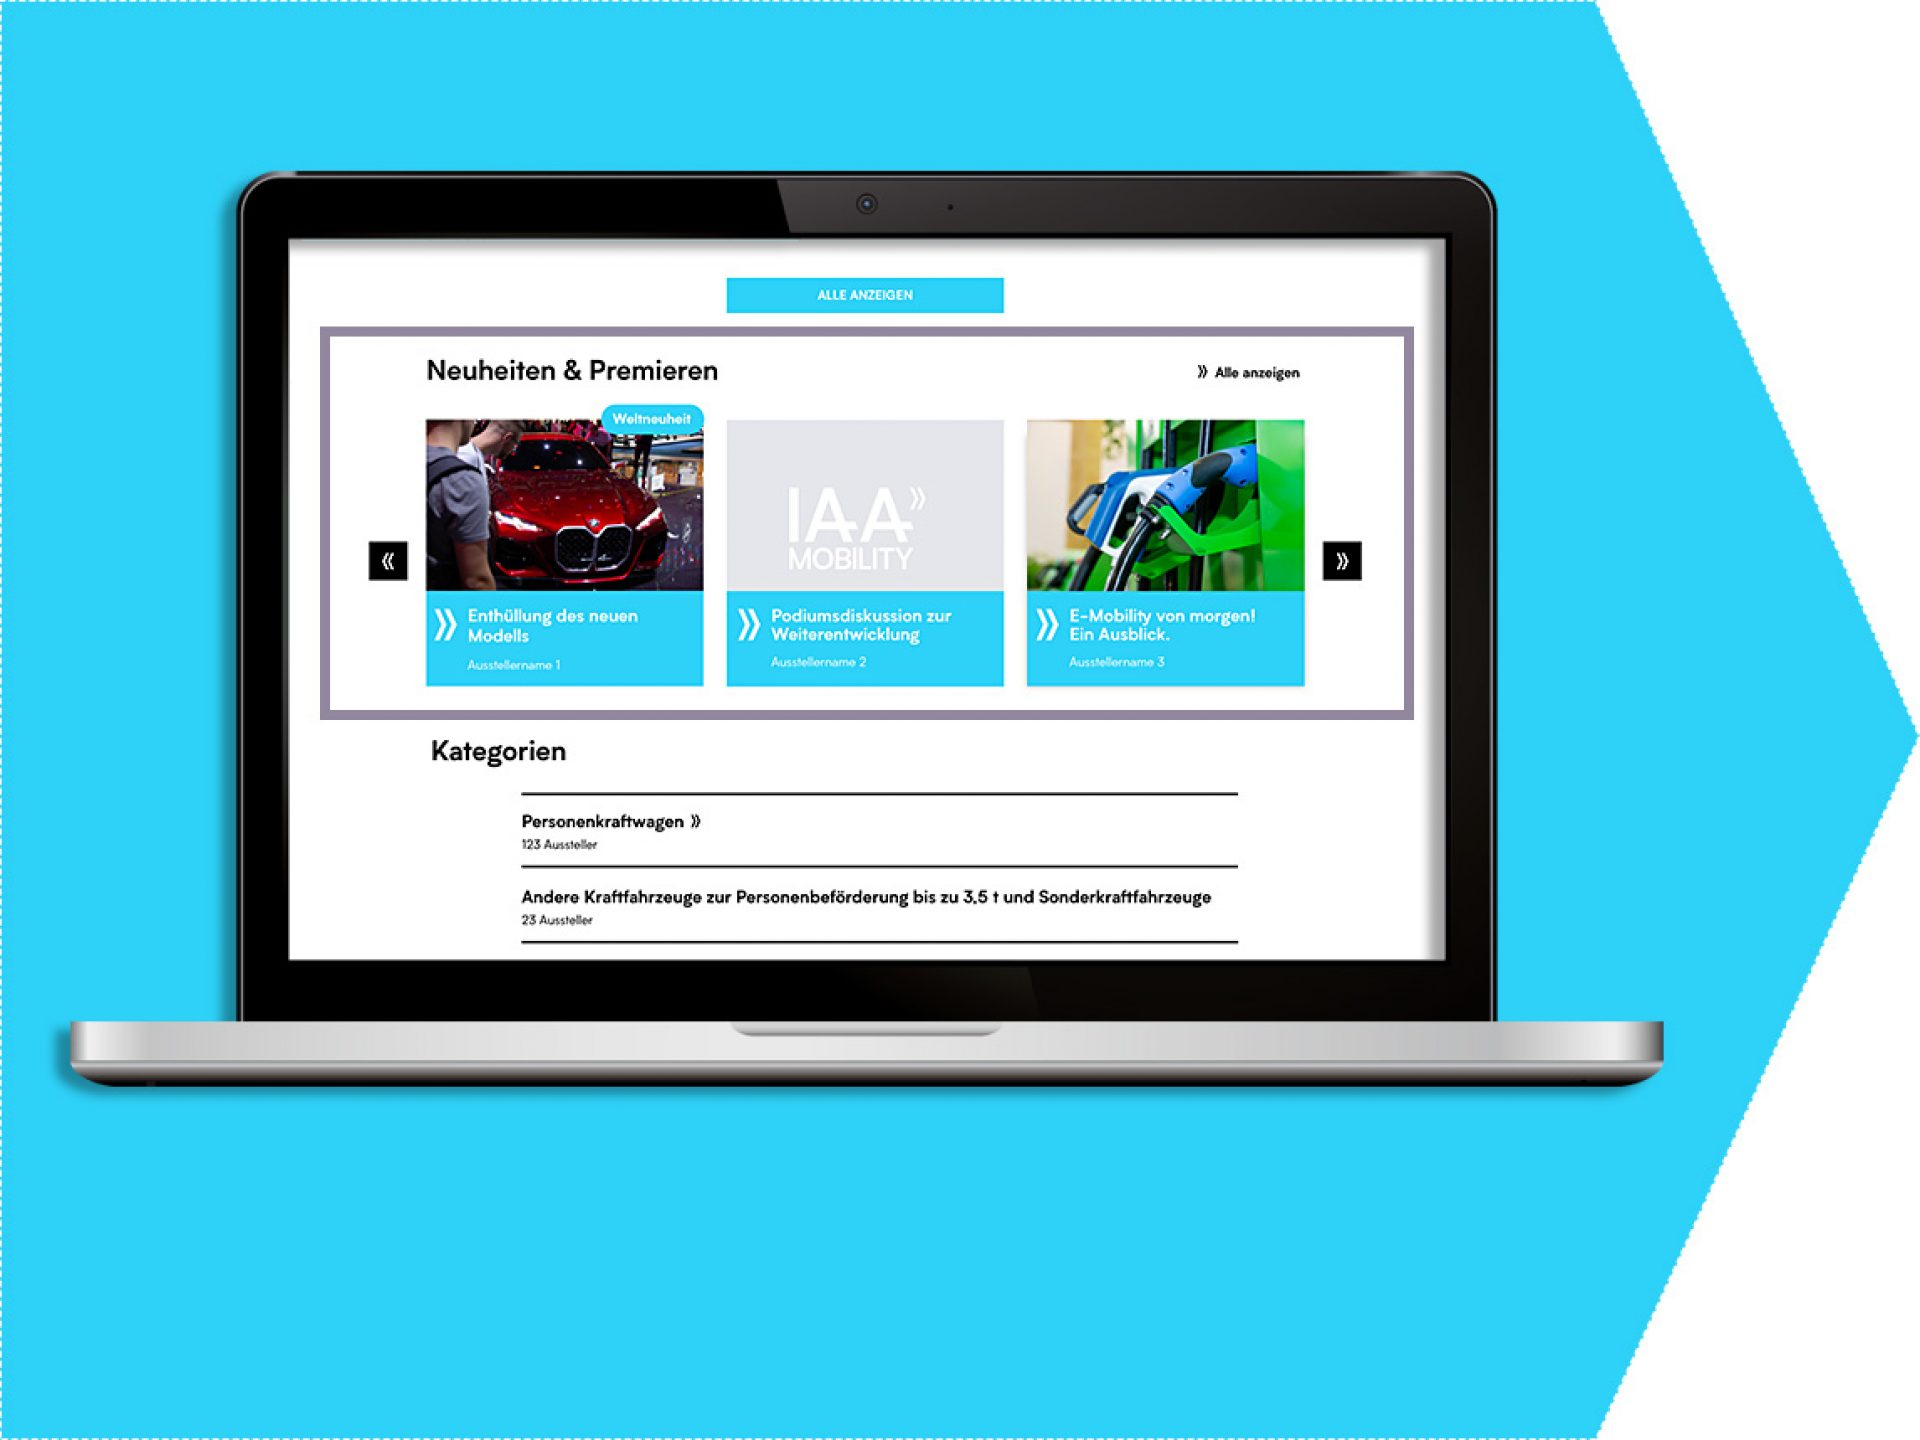 Innovations on the exhibitor portal